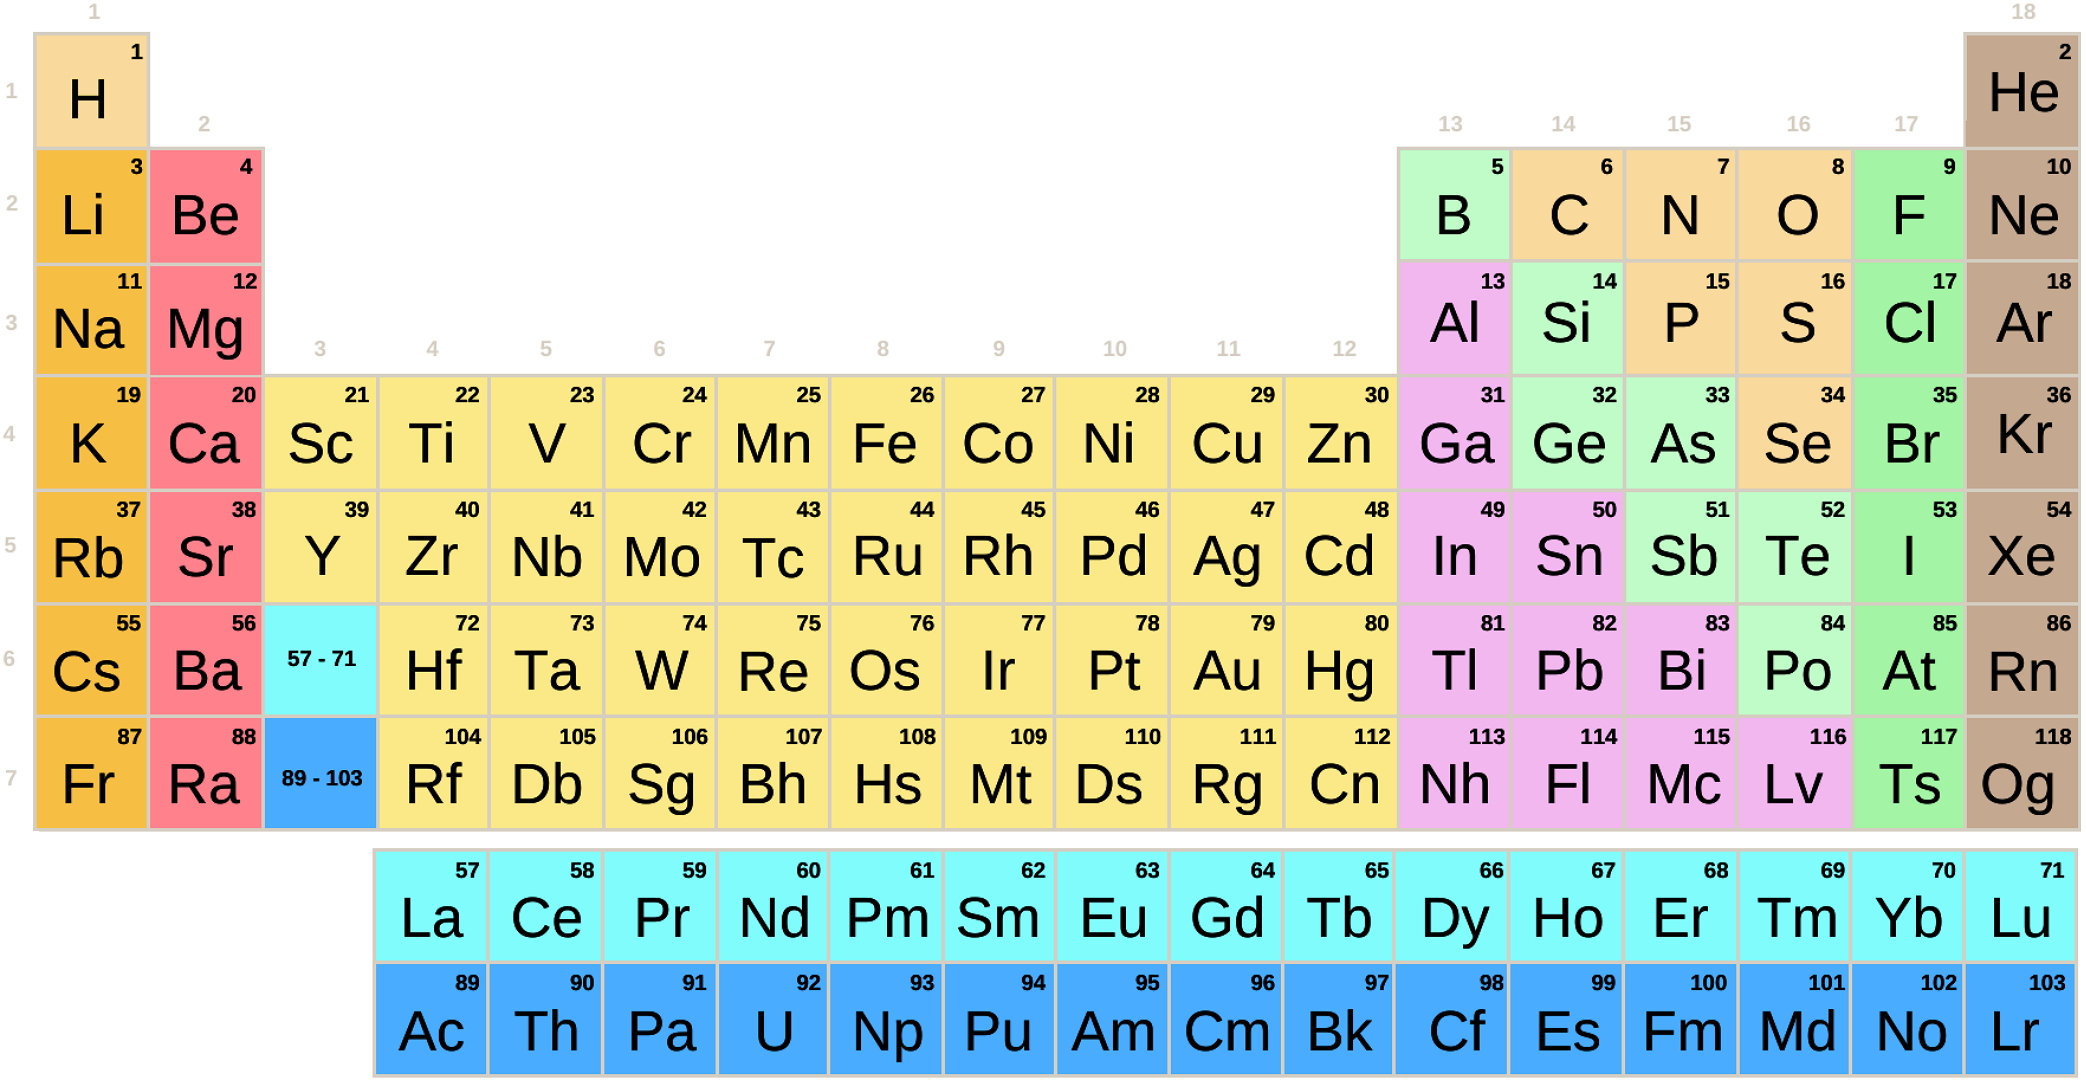 Periodic table by subgroups with symbols (difficult)